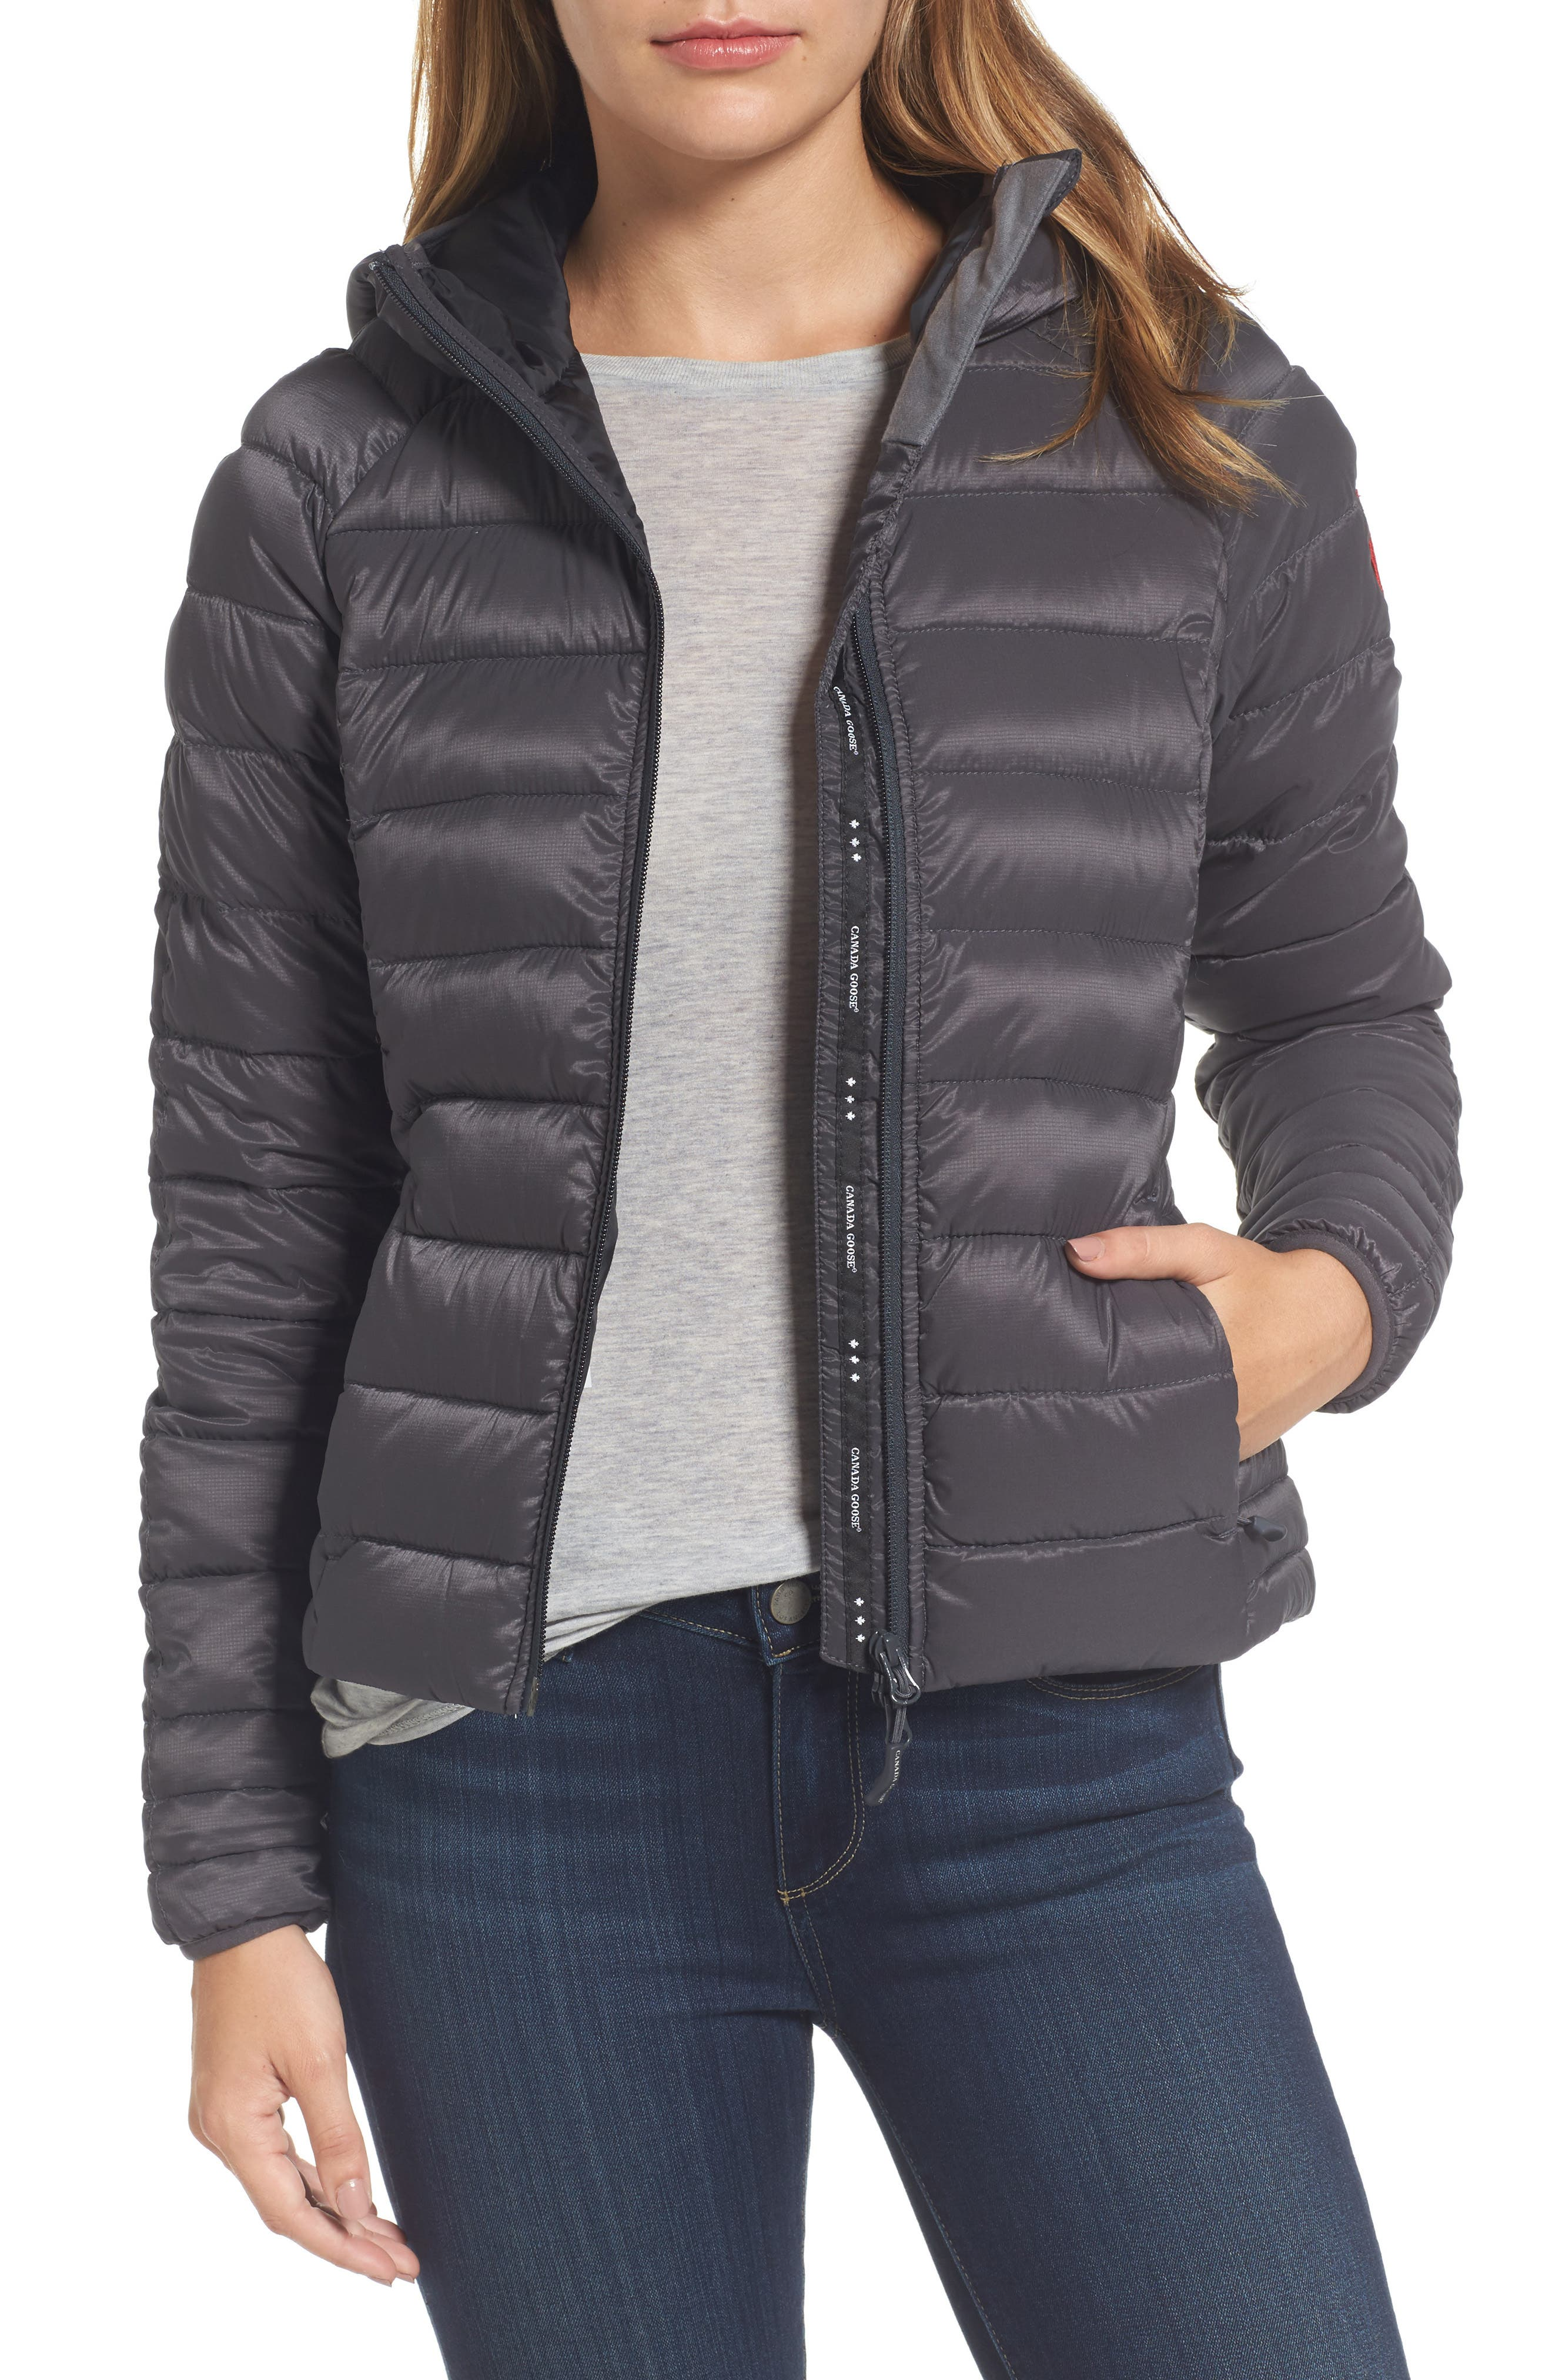 'Brookvale' Packable Hooded Quilted Down Jacket,                         Main,                         color, Graphite/ Black